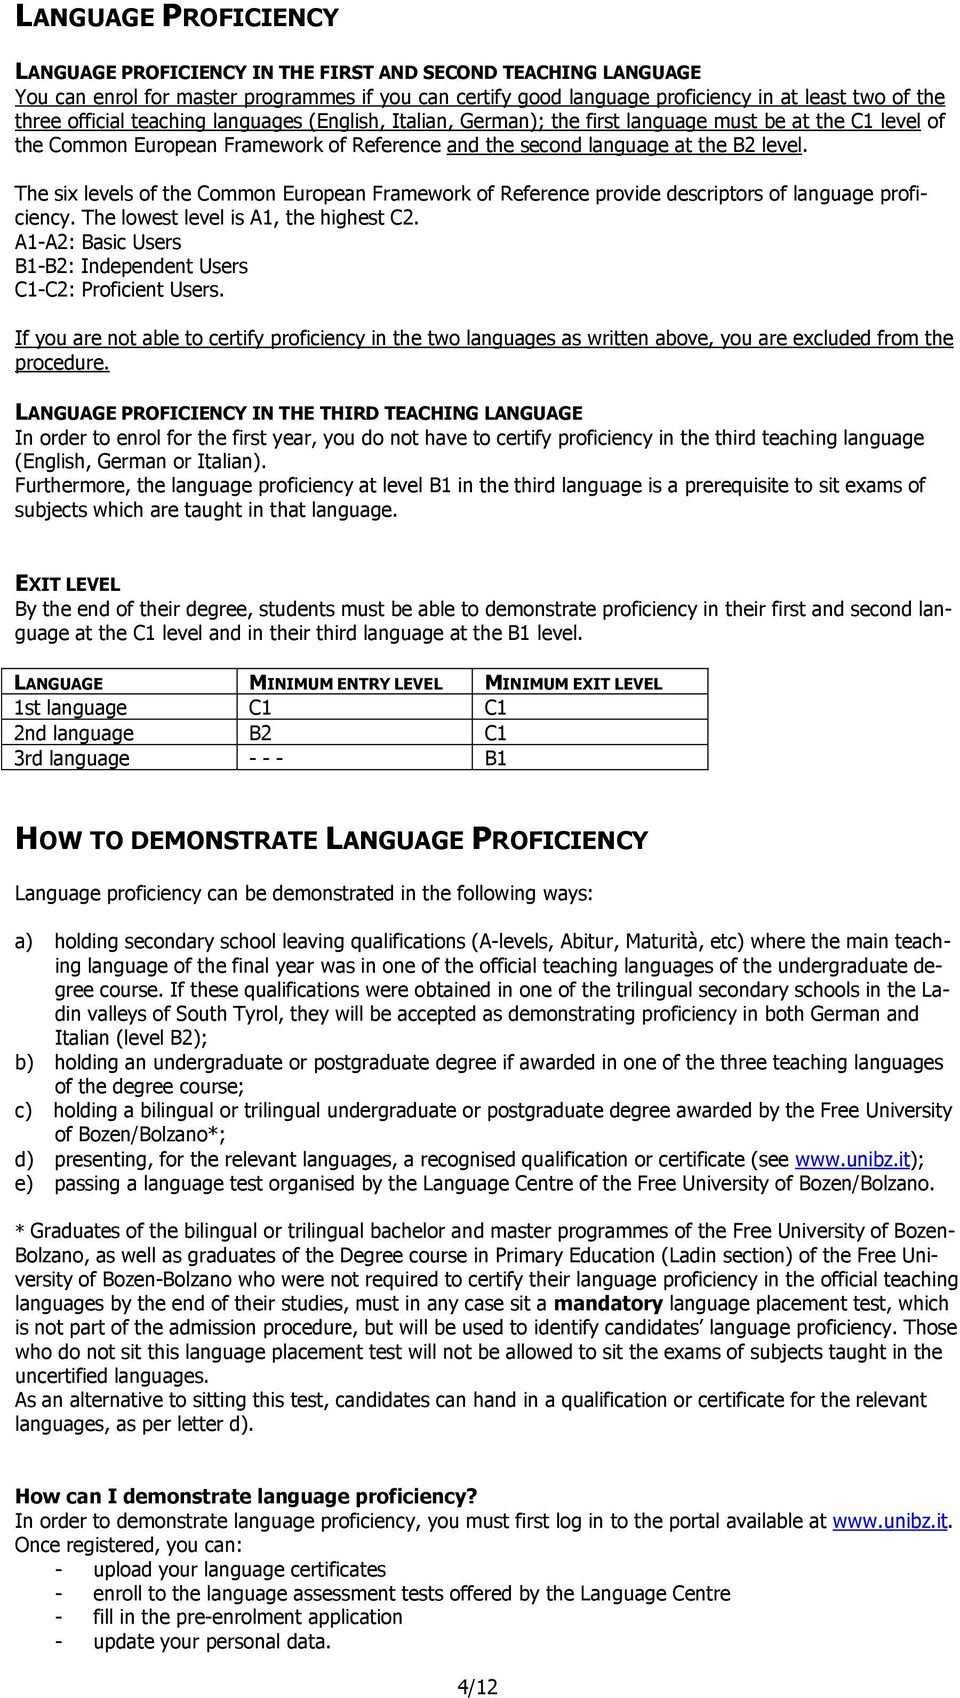 The six levels of the Common European Framework of Reference provide descriptors of language proficiency. The lowest level is A1, the highest C2.